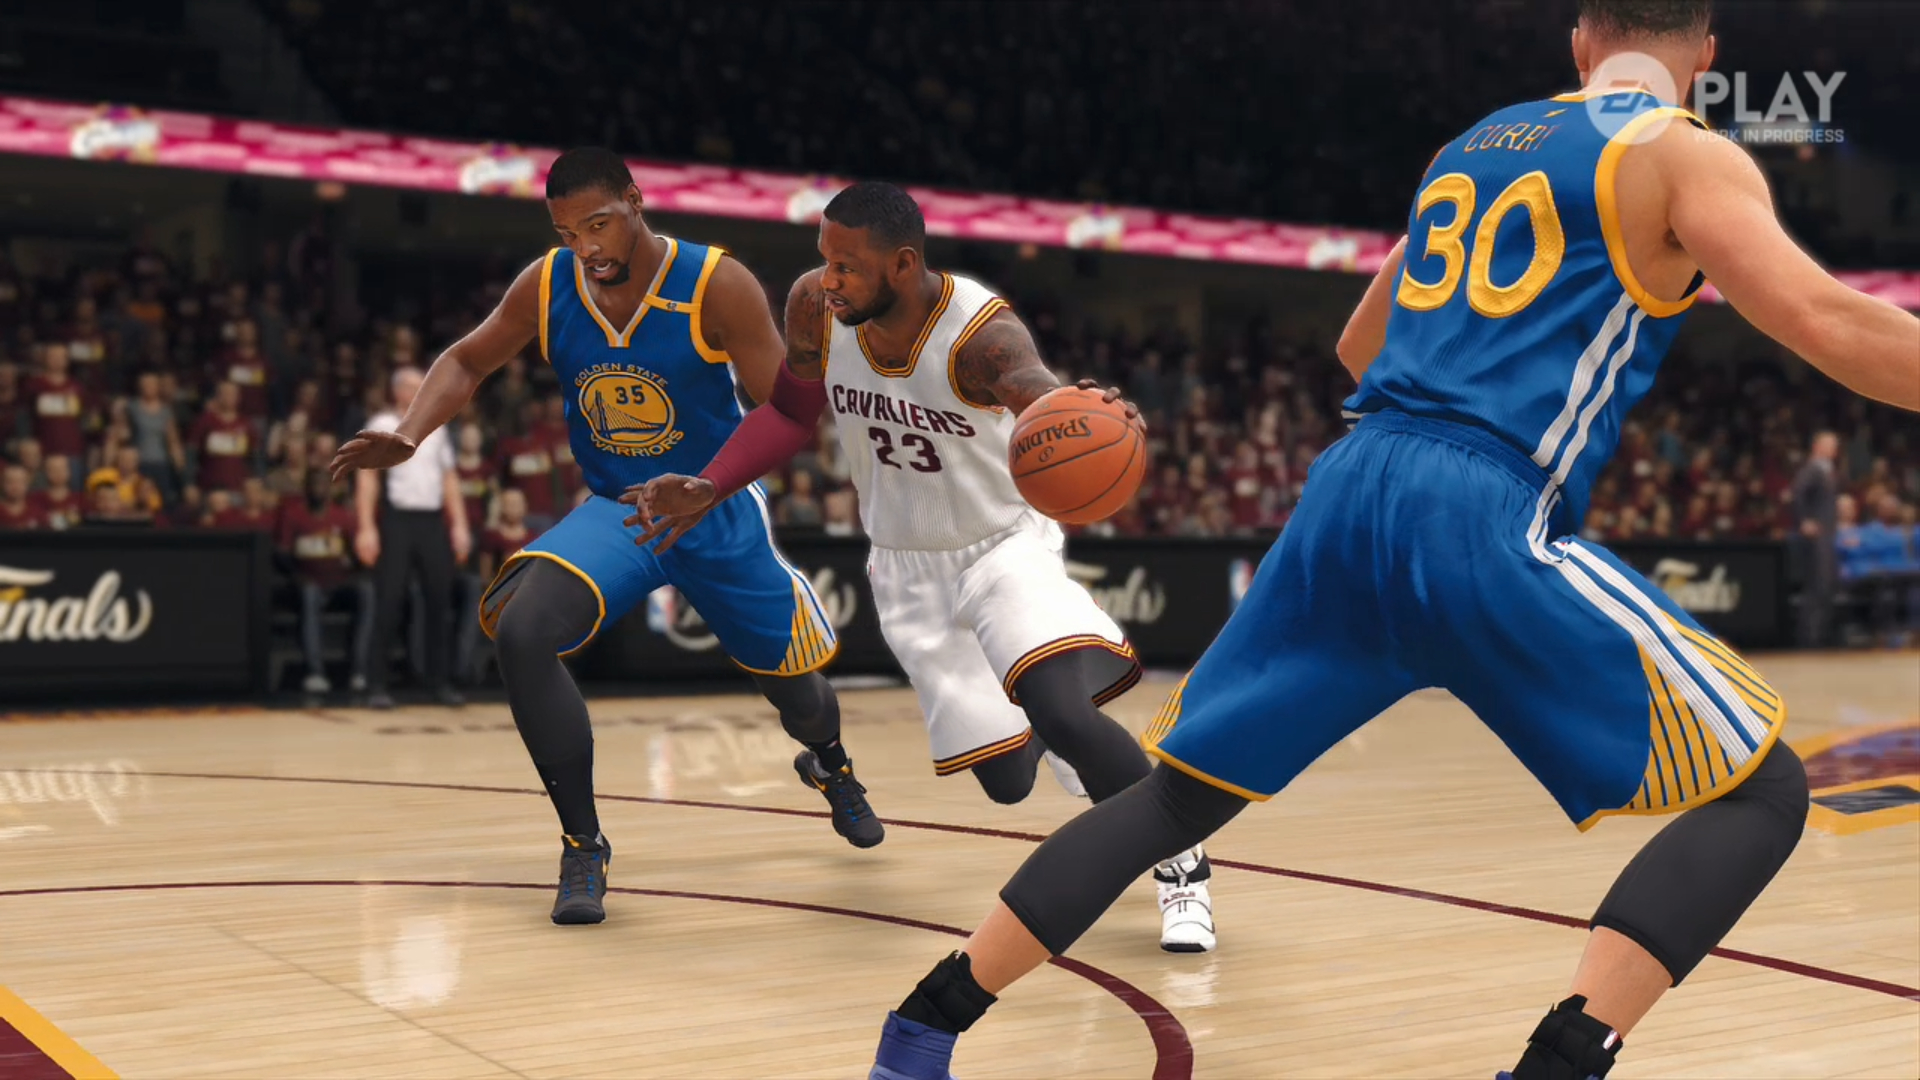 EA is still trying to make basketball games for some reason with